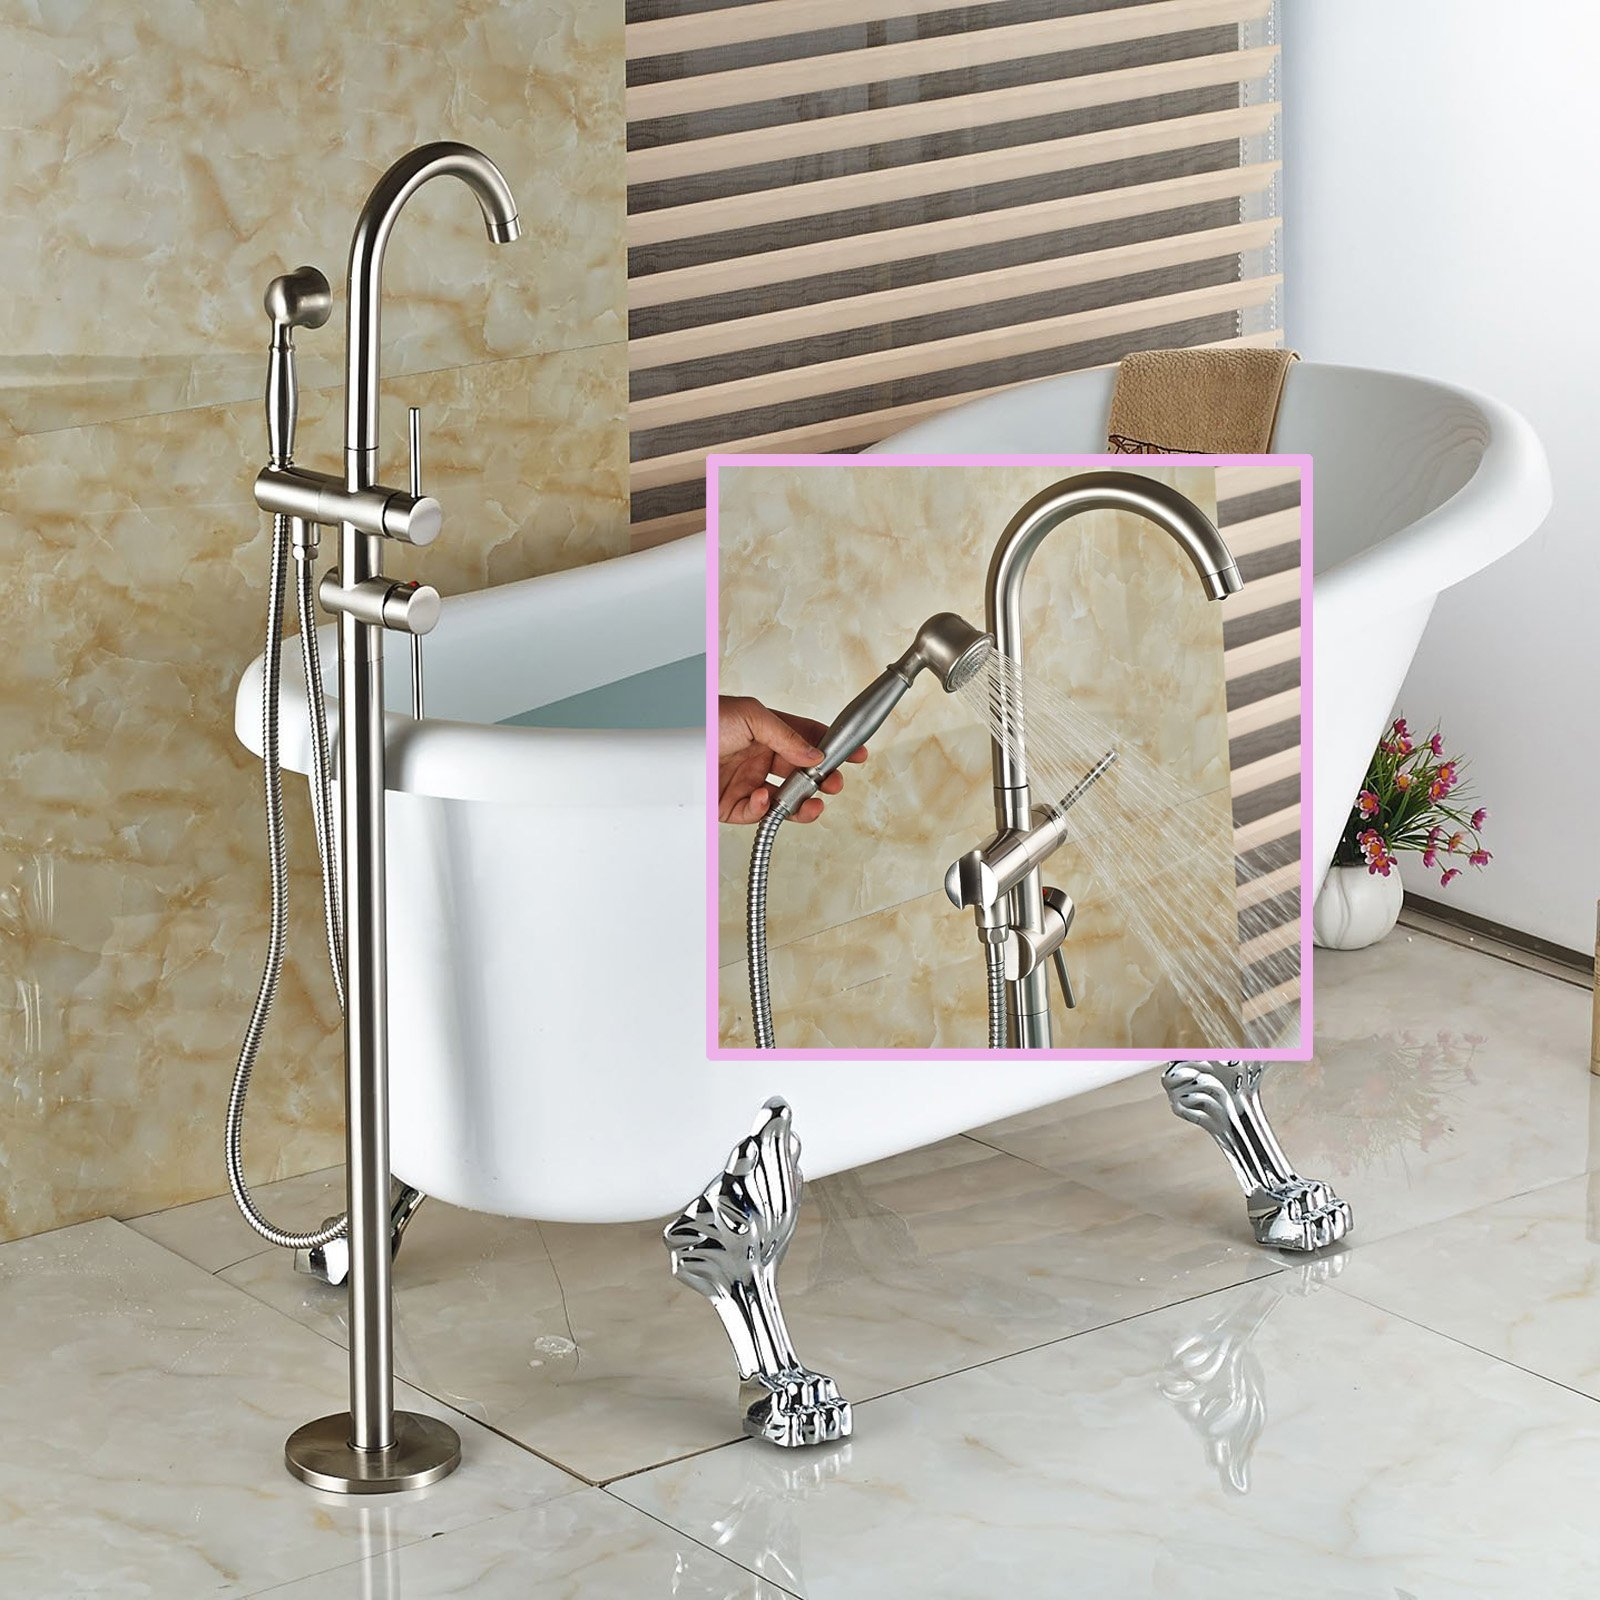 Senlesen Floor Mounted Bathroom Faucet Free Standing Bath Tub Filler Hot Cold Water Taps with Handheld Shower Brushed Nickel by Senlesen